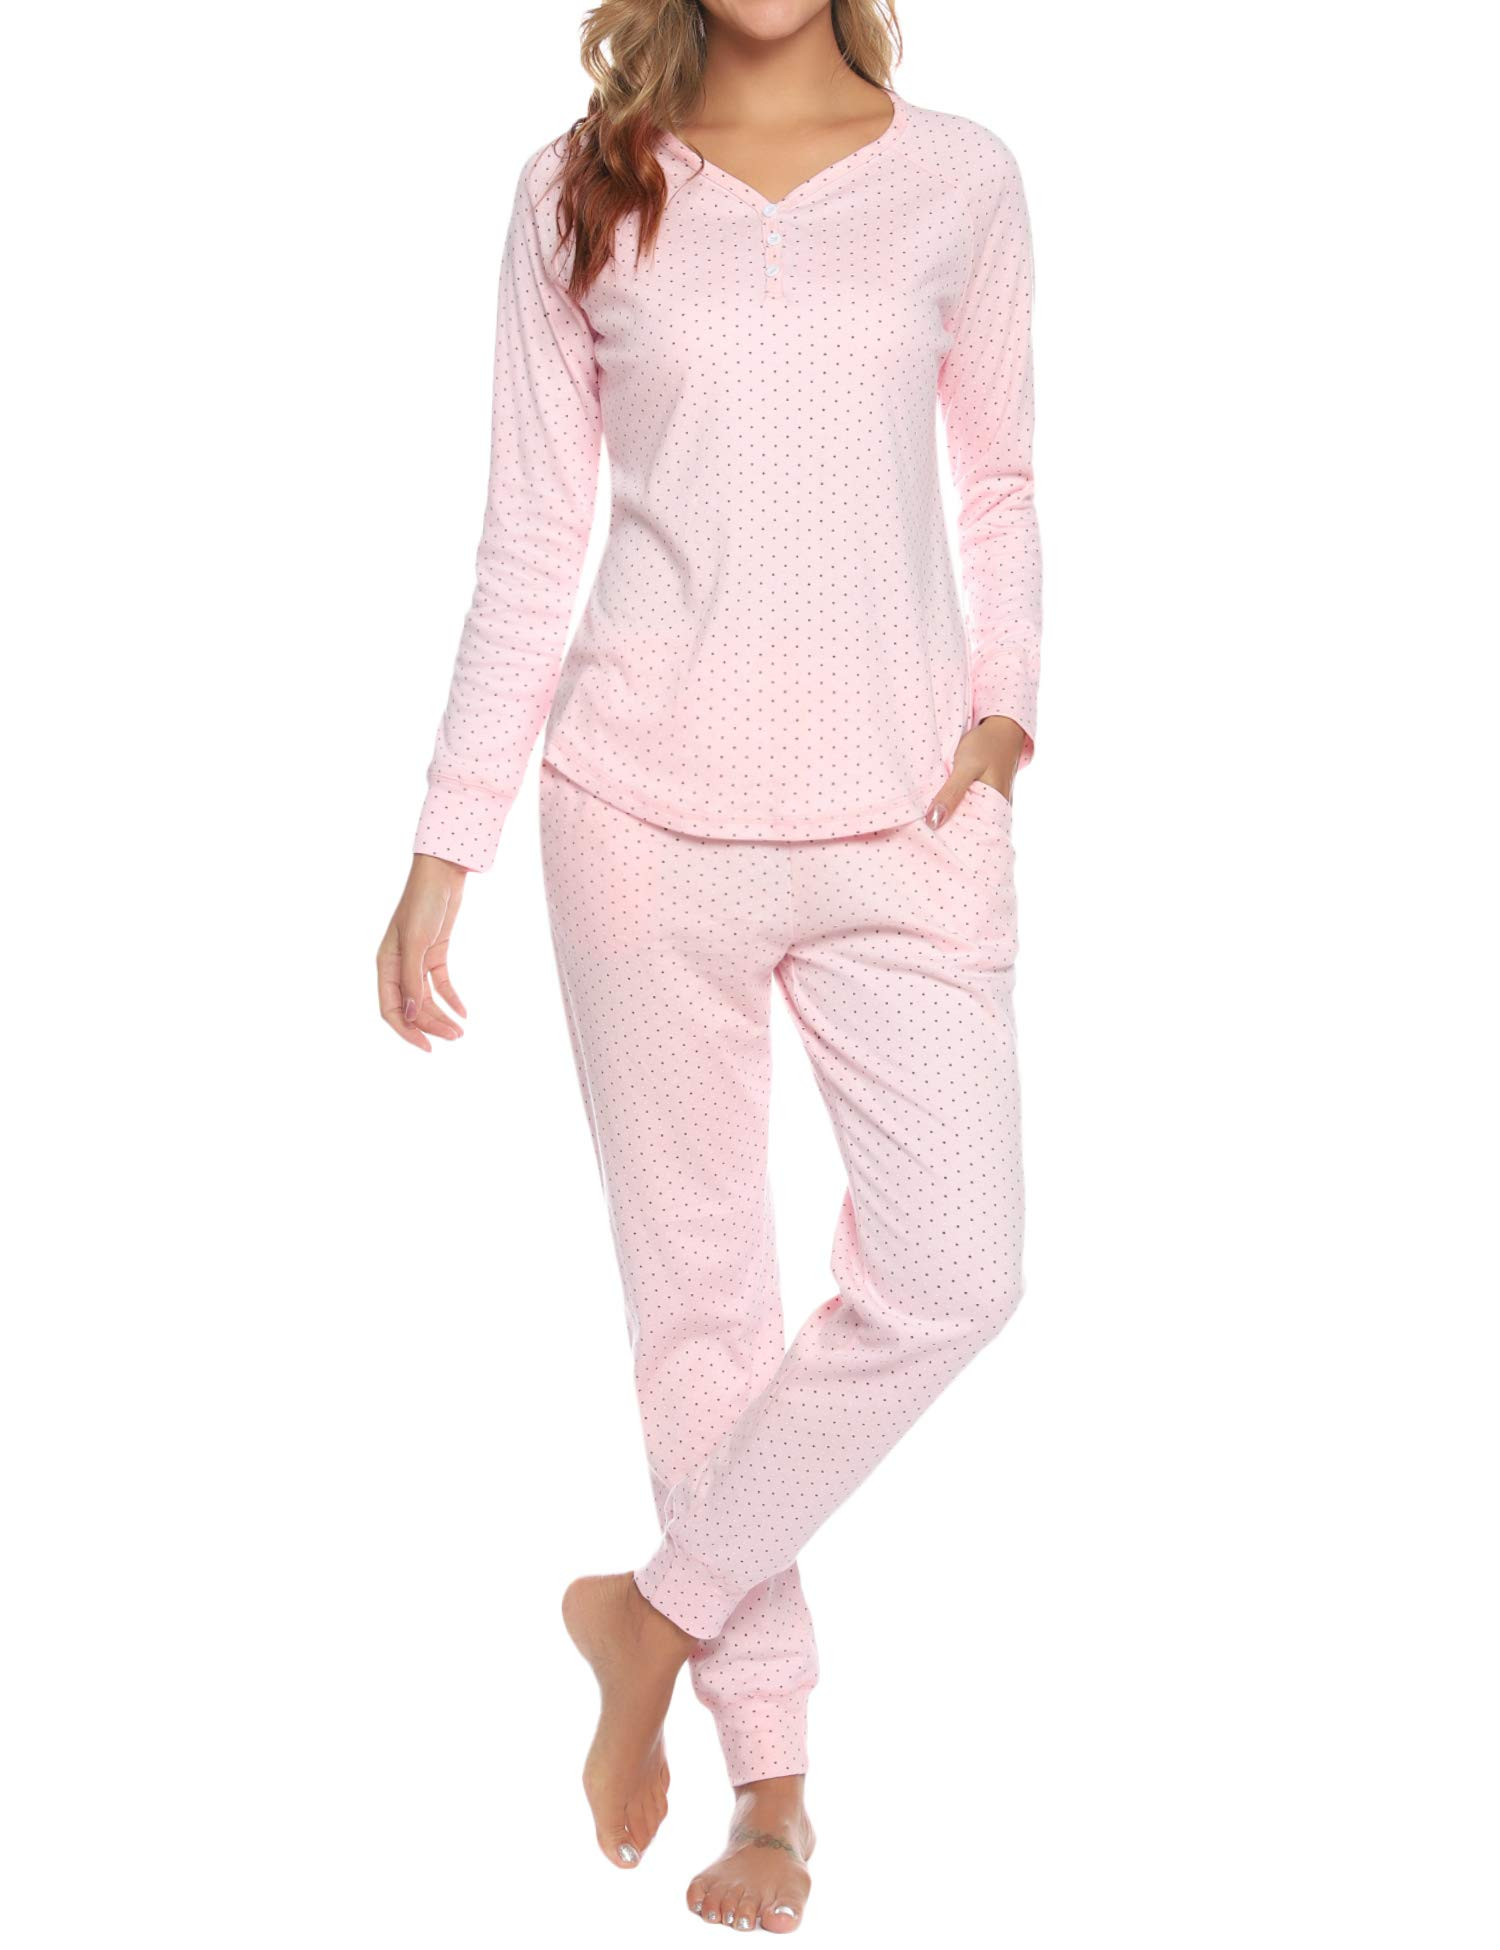 Hawiton Long Sleeve Dot Pattern Pajamas Set for Women Cotton Lounge Nightgowns with Pockets